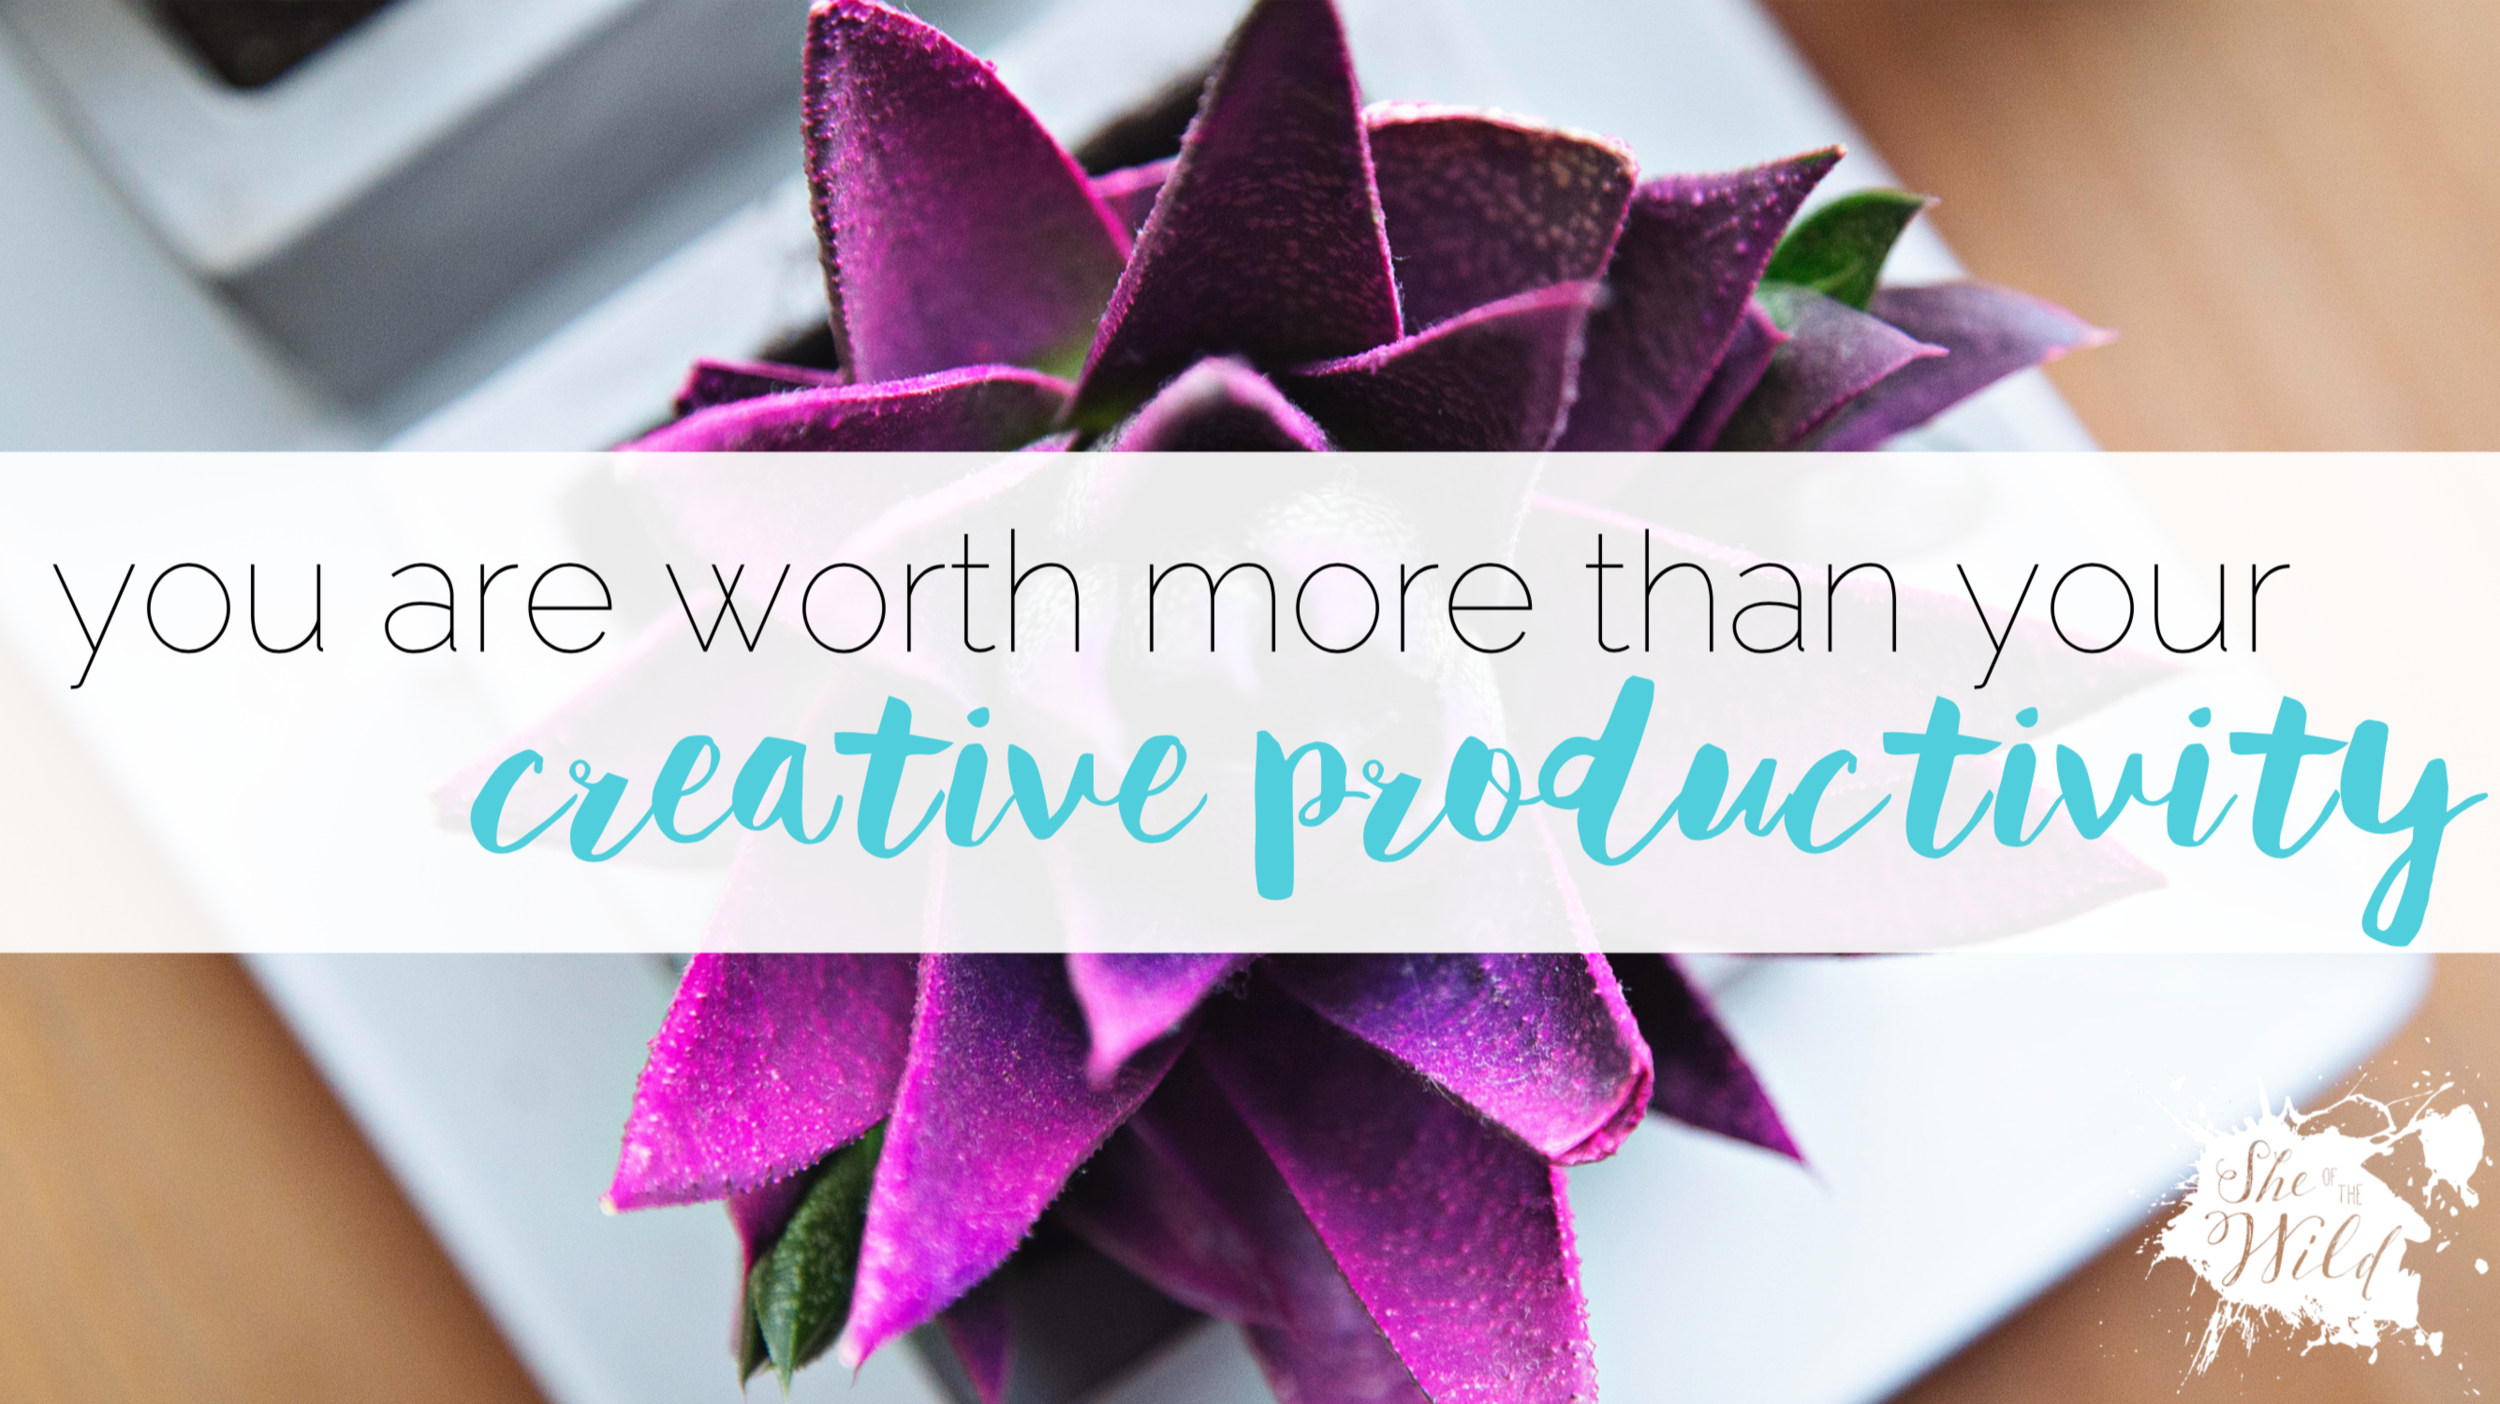 creativity and your worth